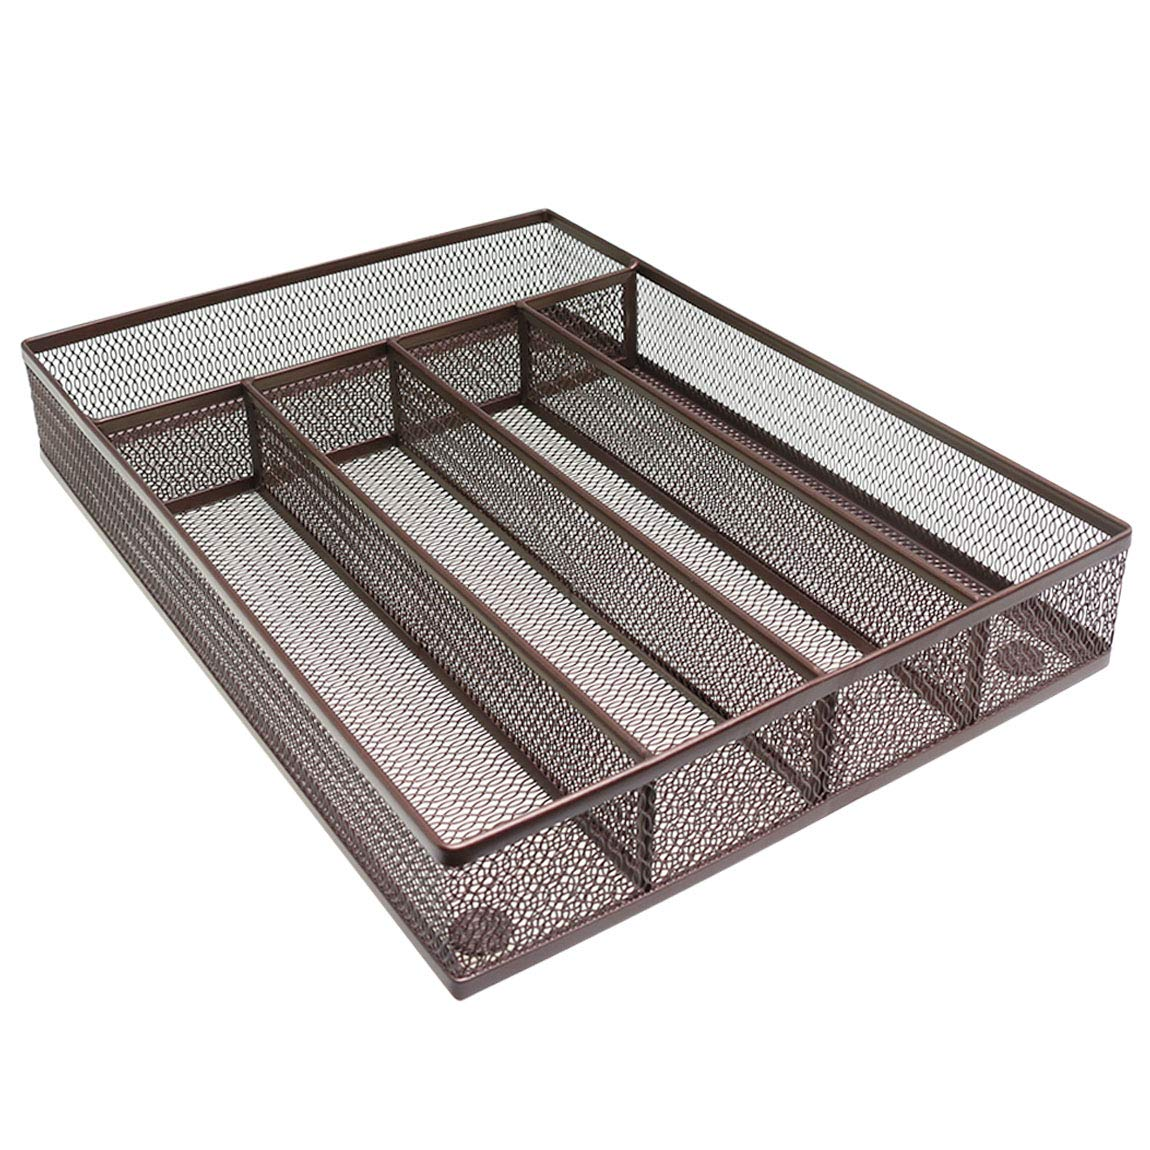 """SZAT PRO Mesh Silverware Tray Cutlery Drawer Organizer Kitchen Storage Flatware Set Utensil Knives Spoons Forks (Brown, 12.5"""" x 9.4"""" x 2"""", 5 Compartments)"""